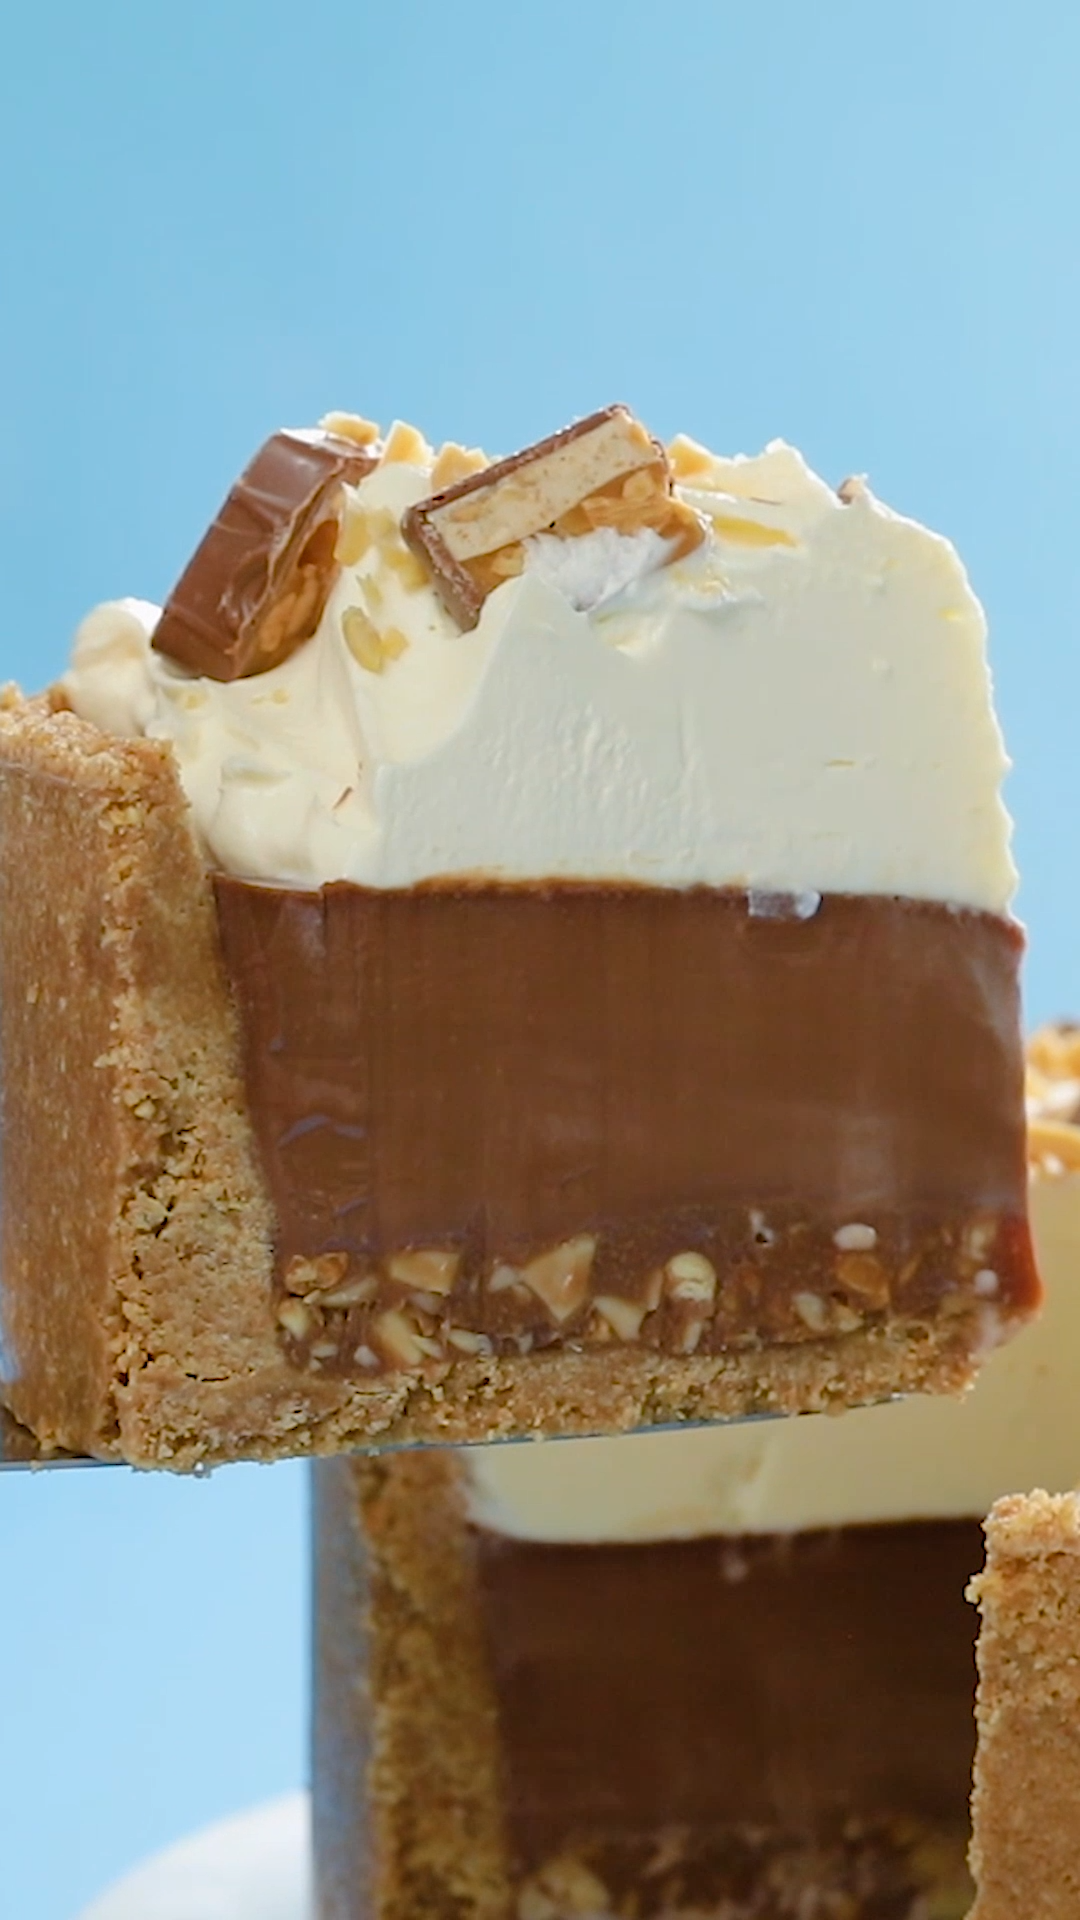 Tarte aux snickers